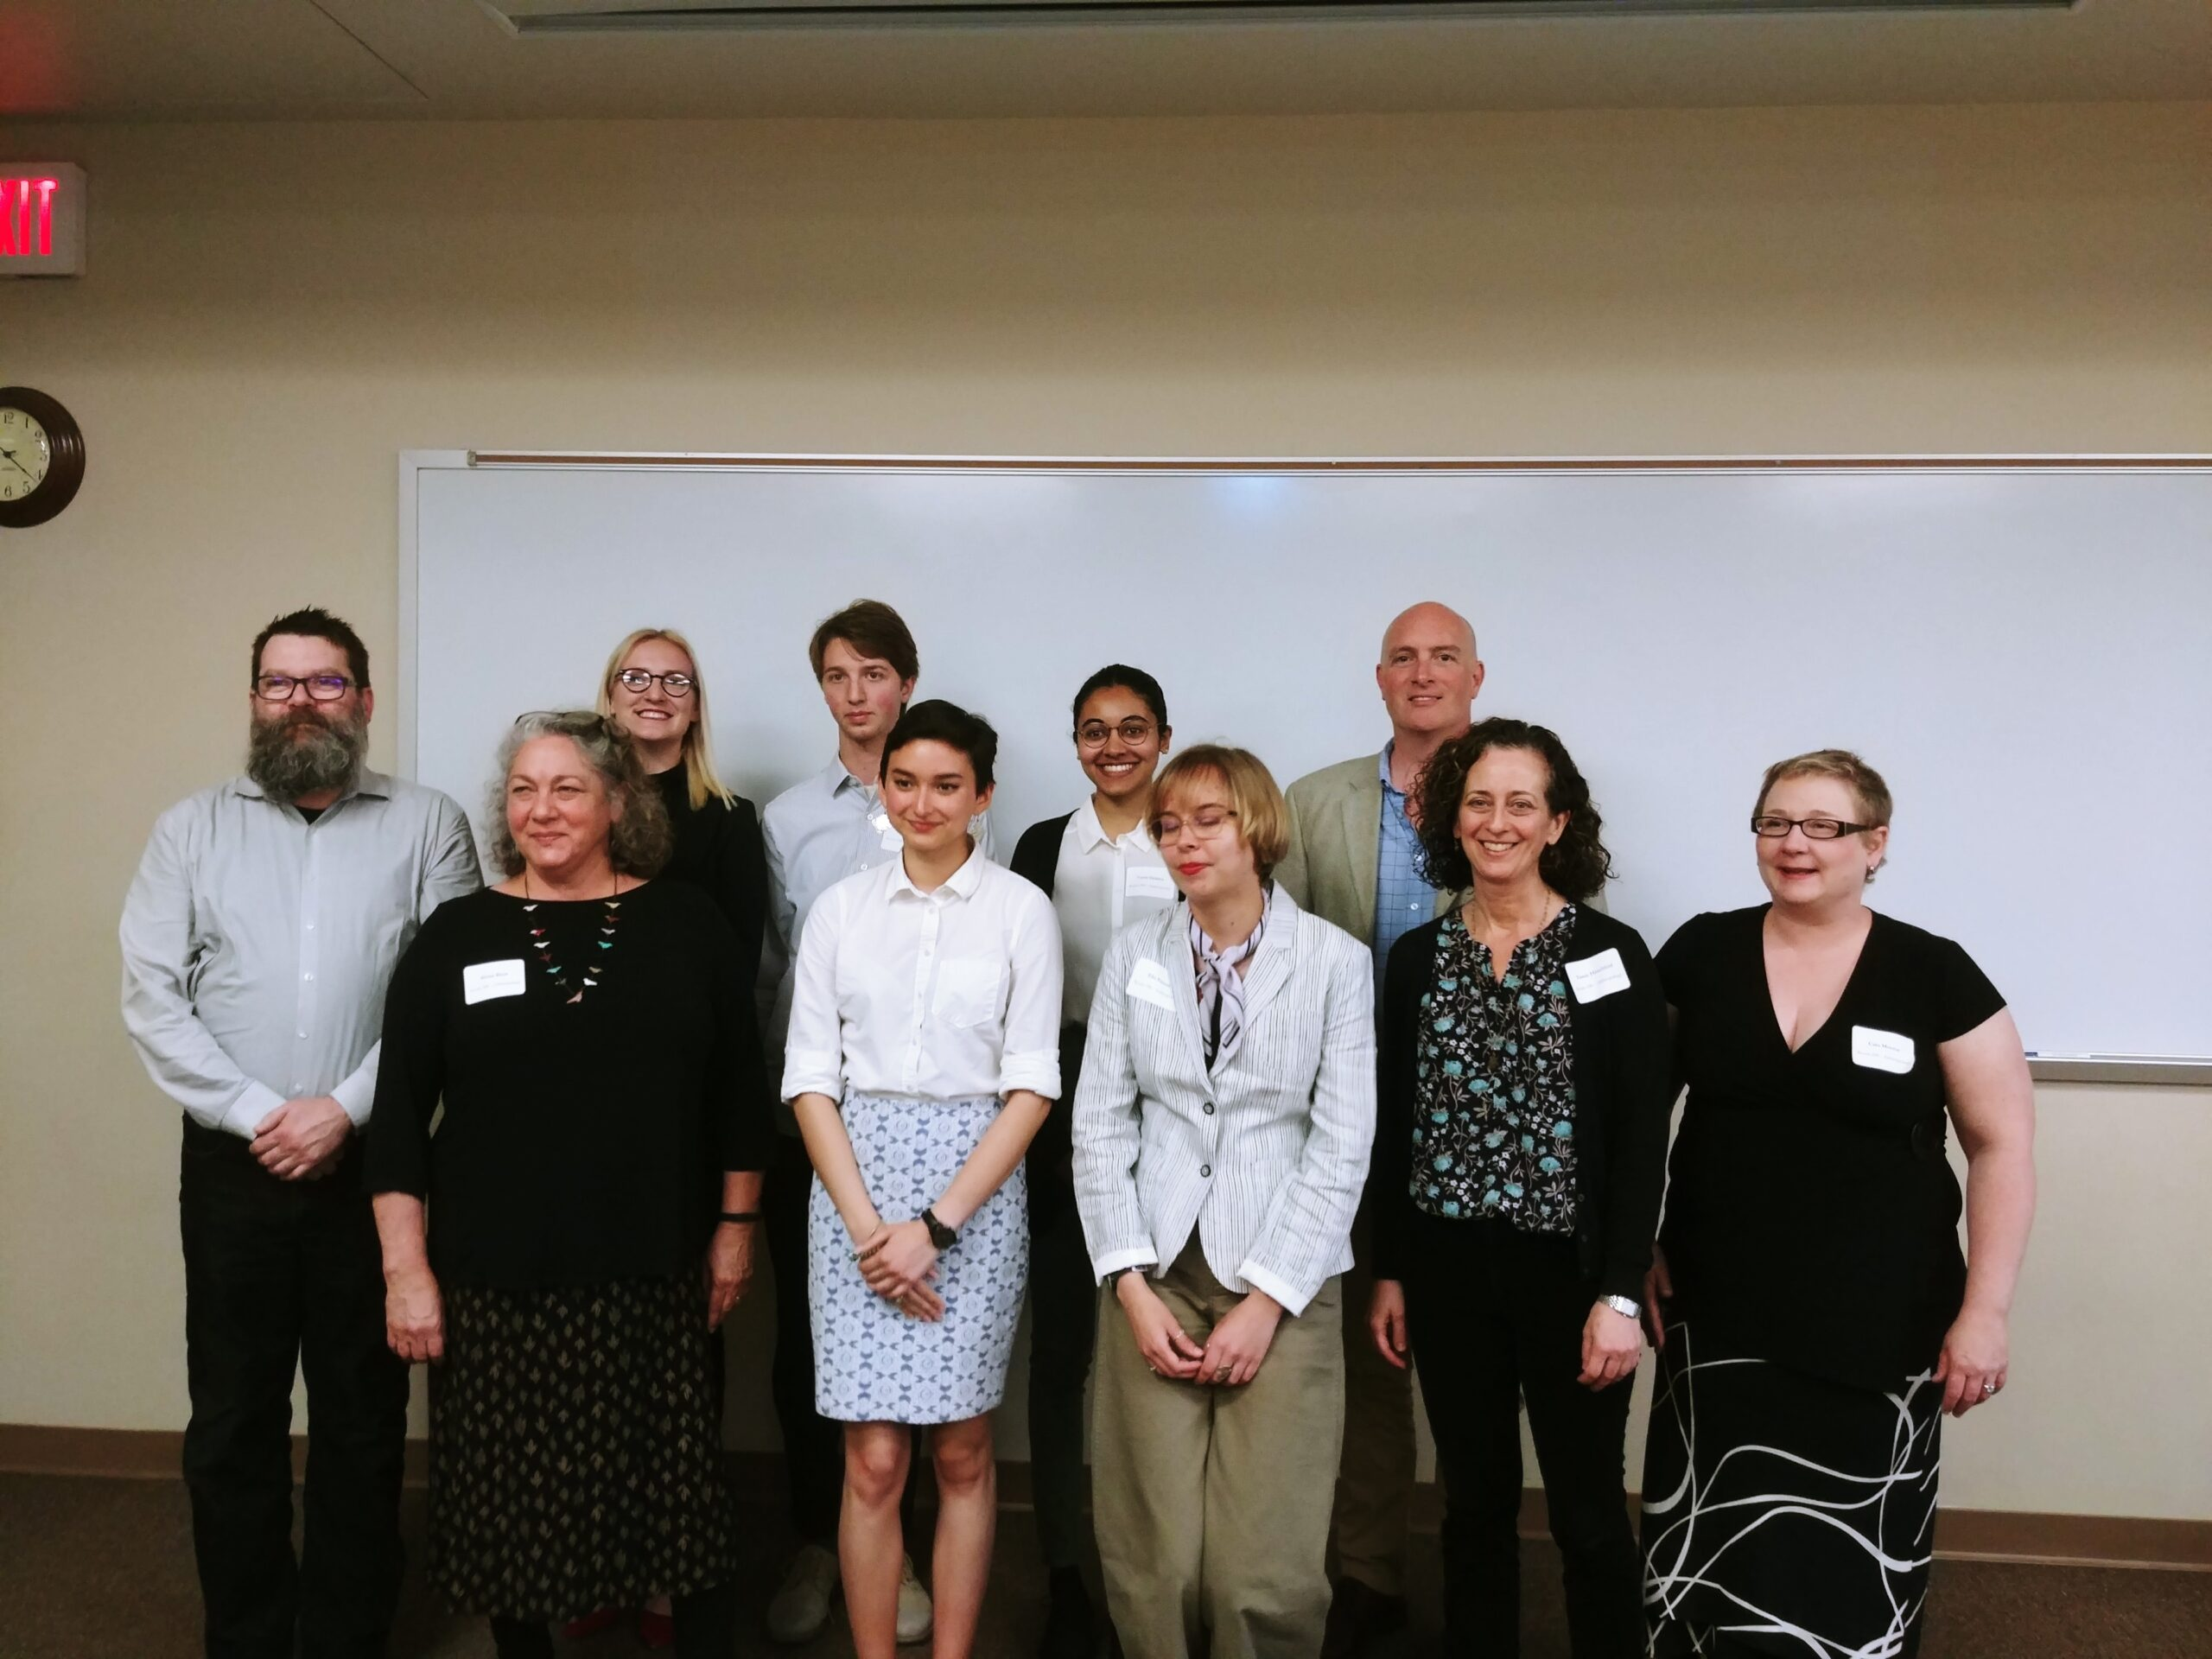 Ian Miller in Undergraduate Research Day, Spring 2019, group photo of Anthropology students who presented research and their faculty mentors.